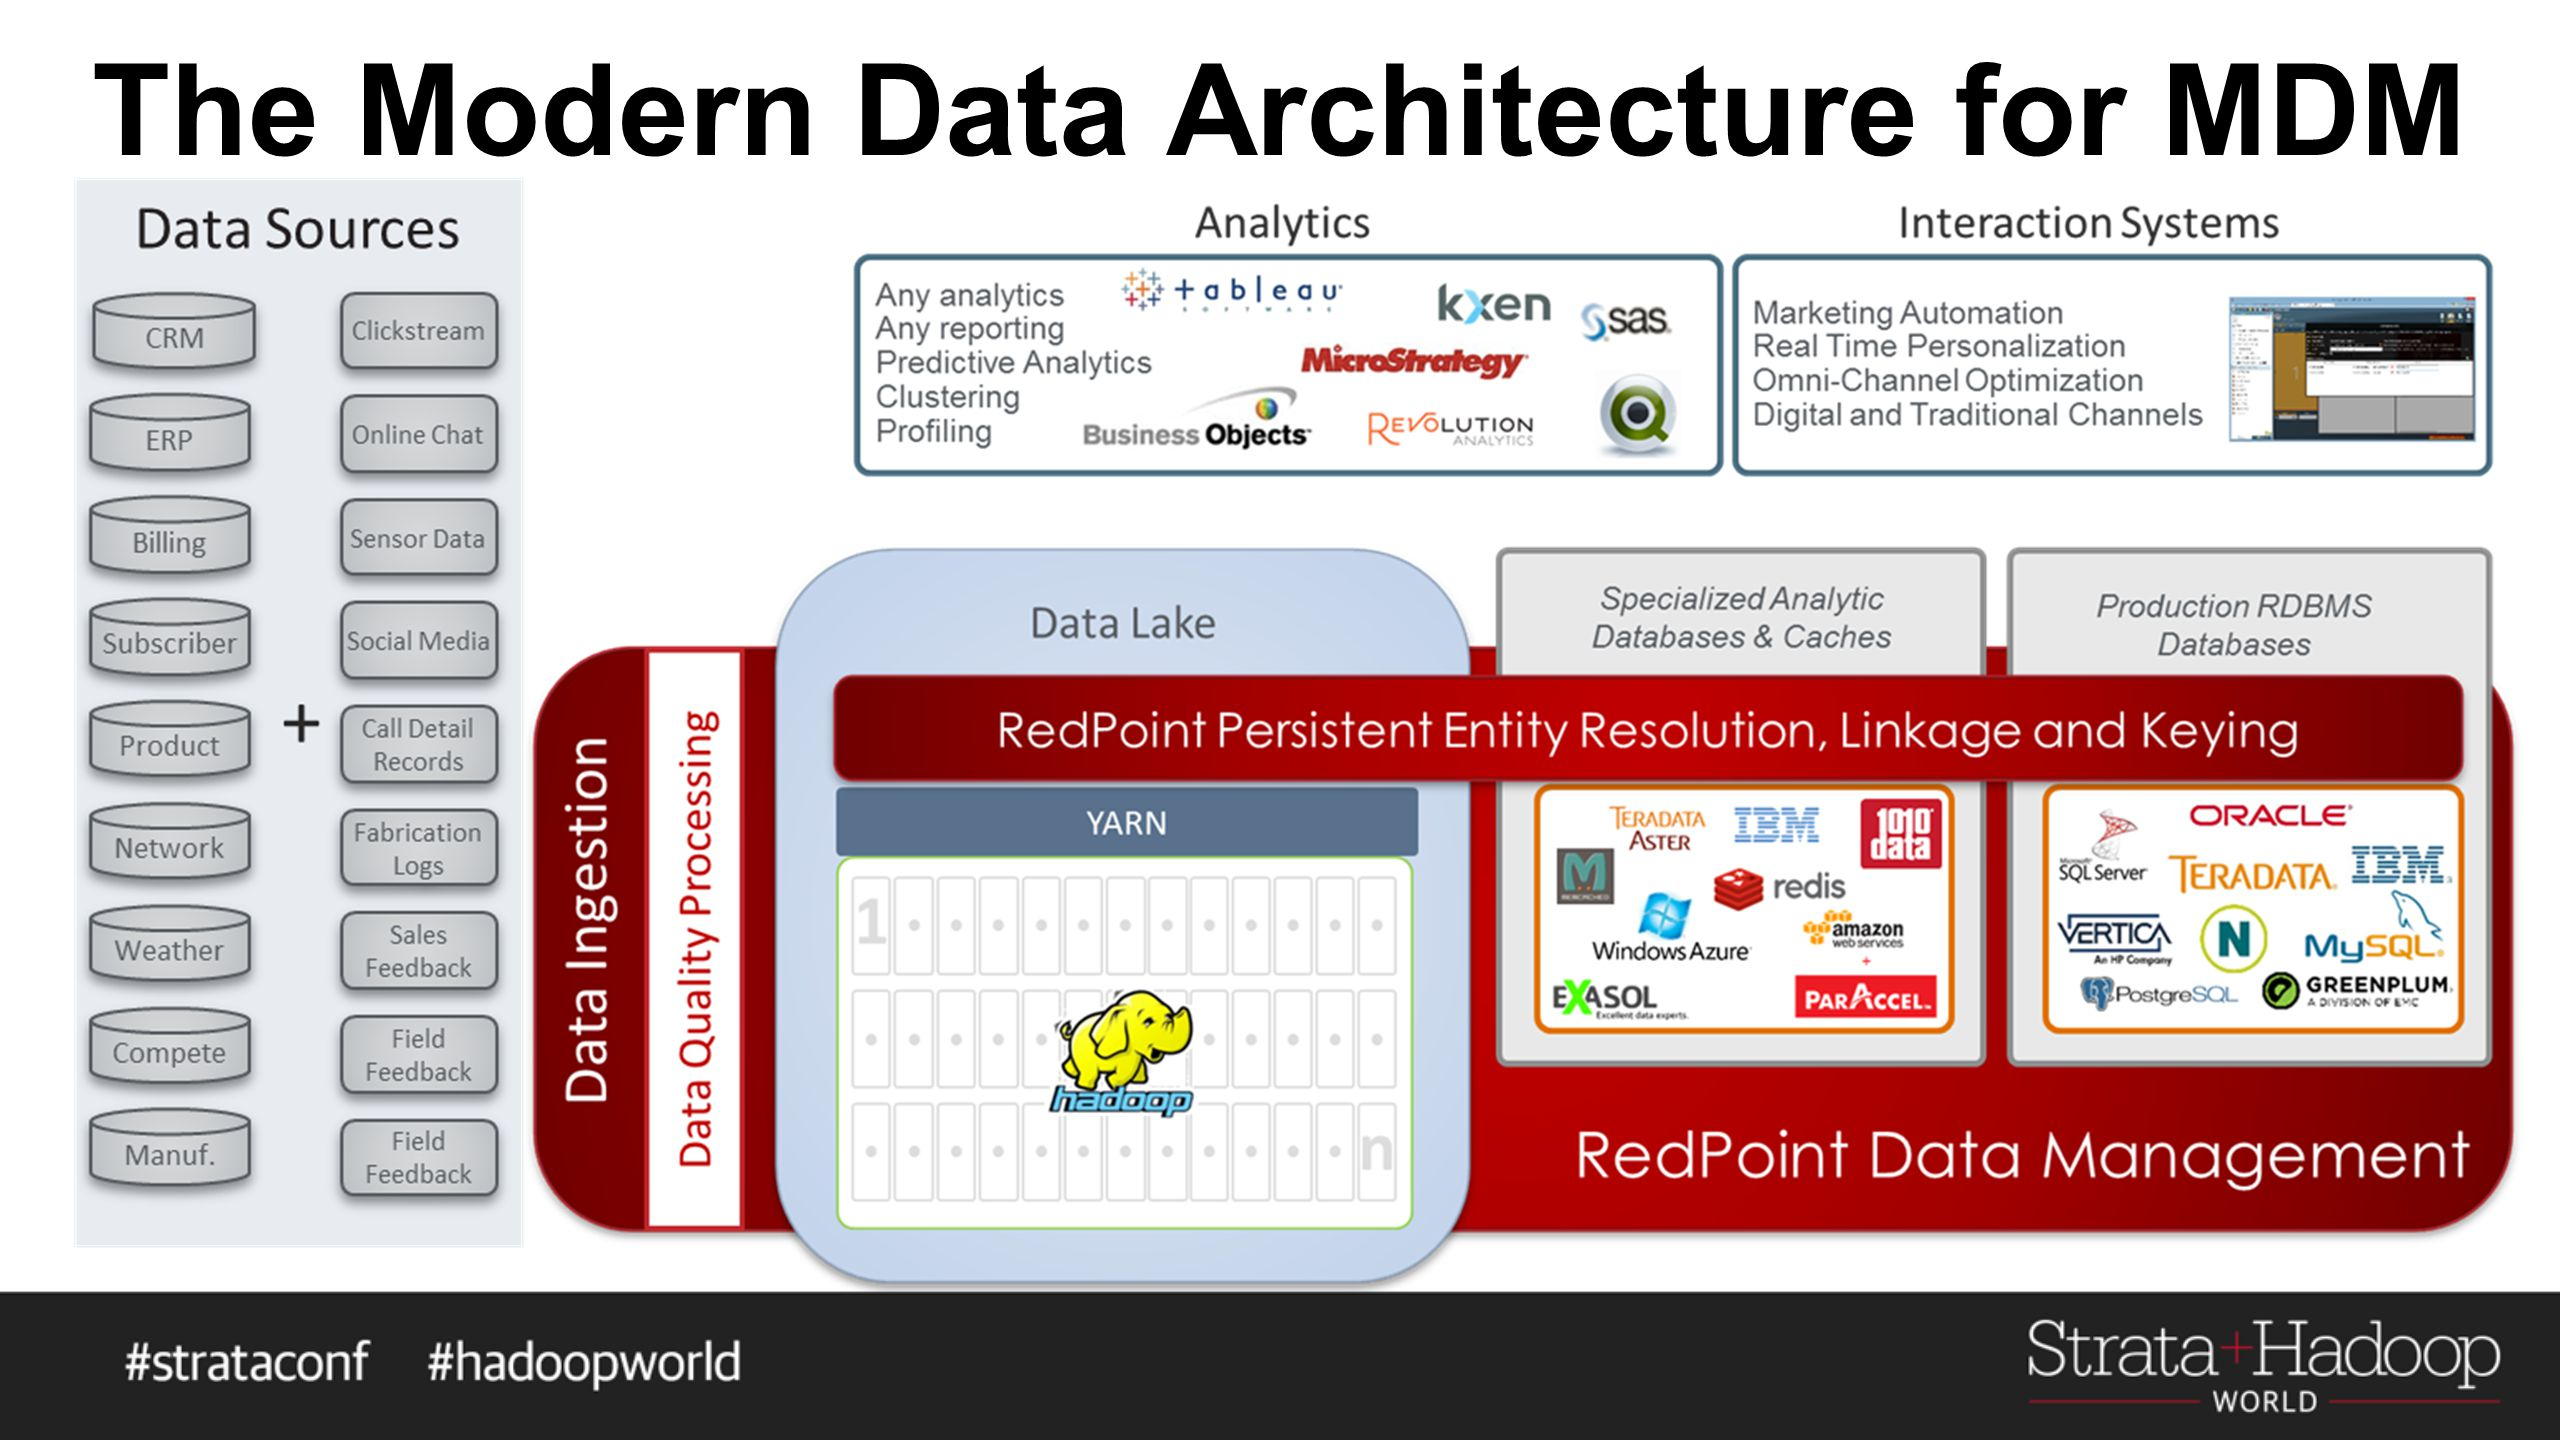 The Modern Data Architecture for MDM